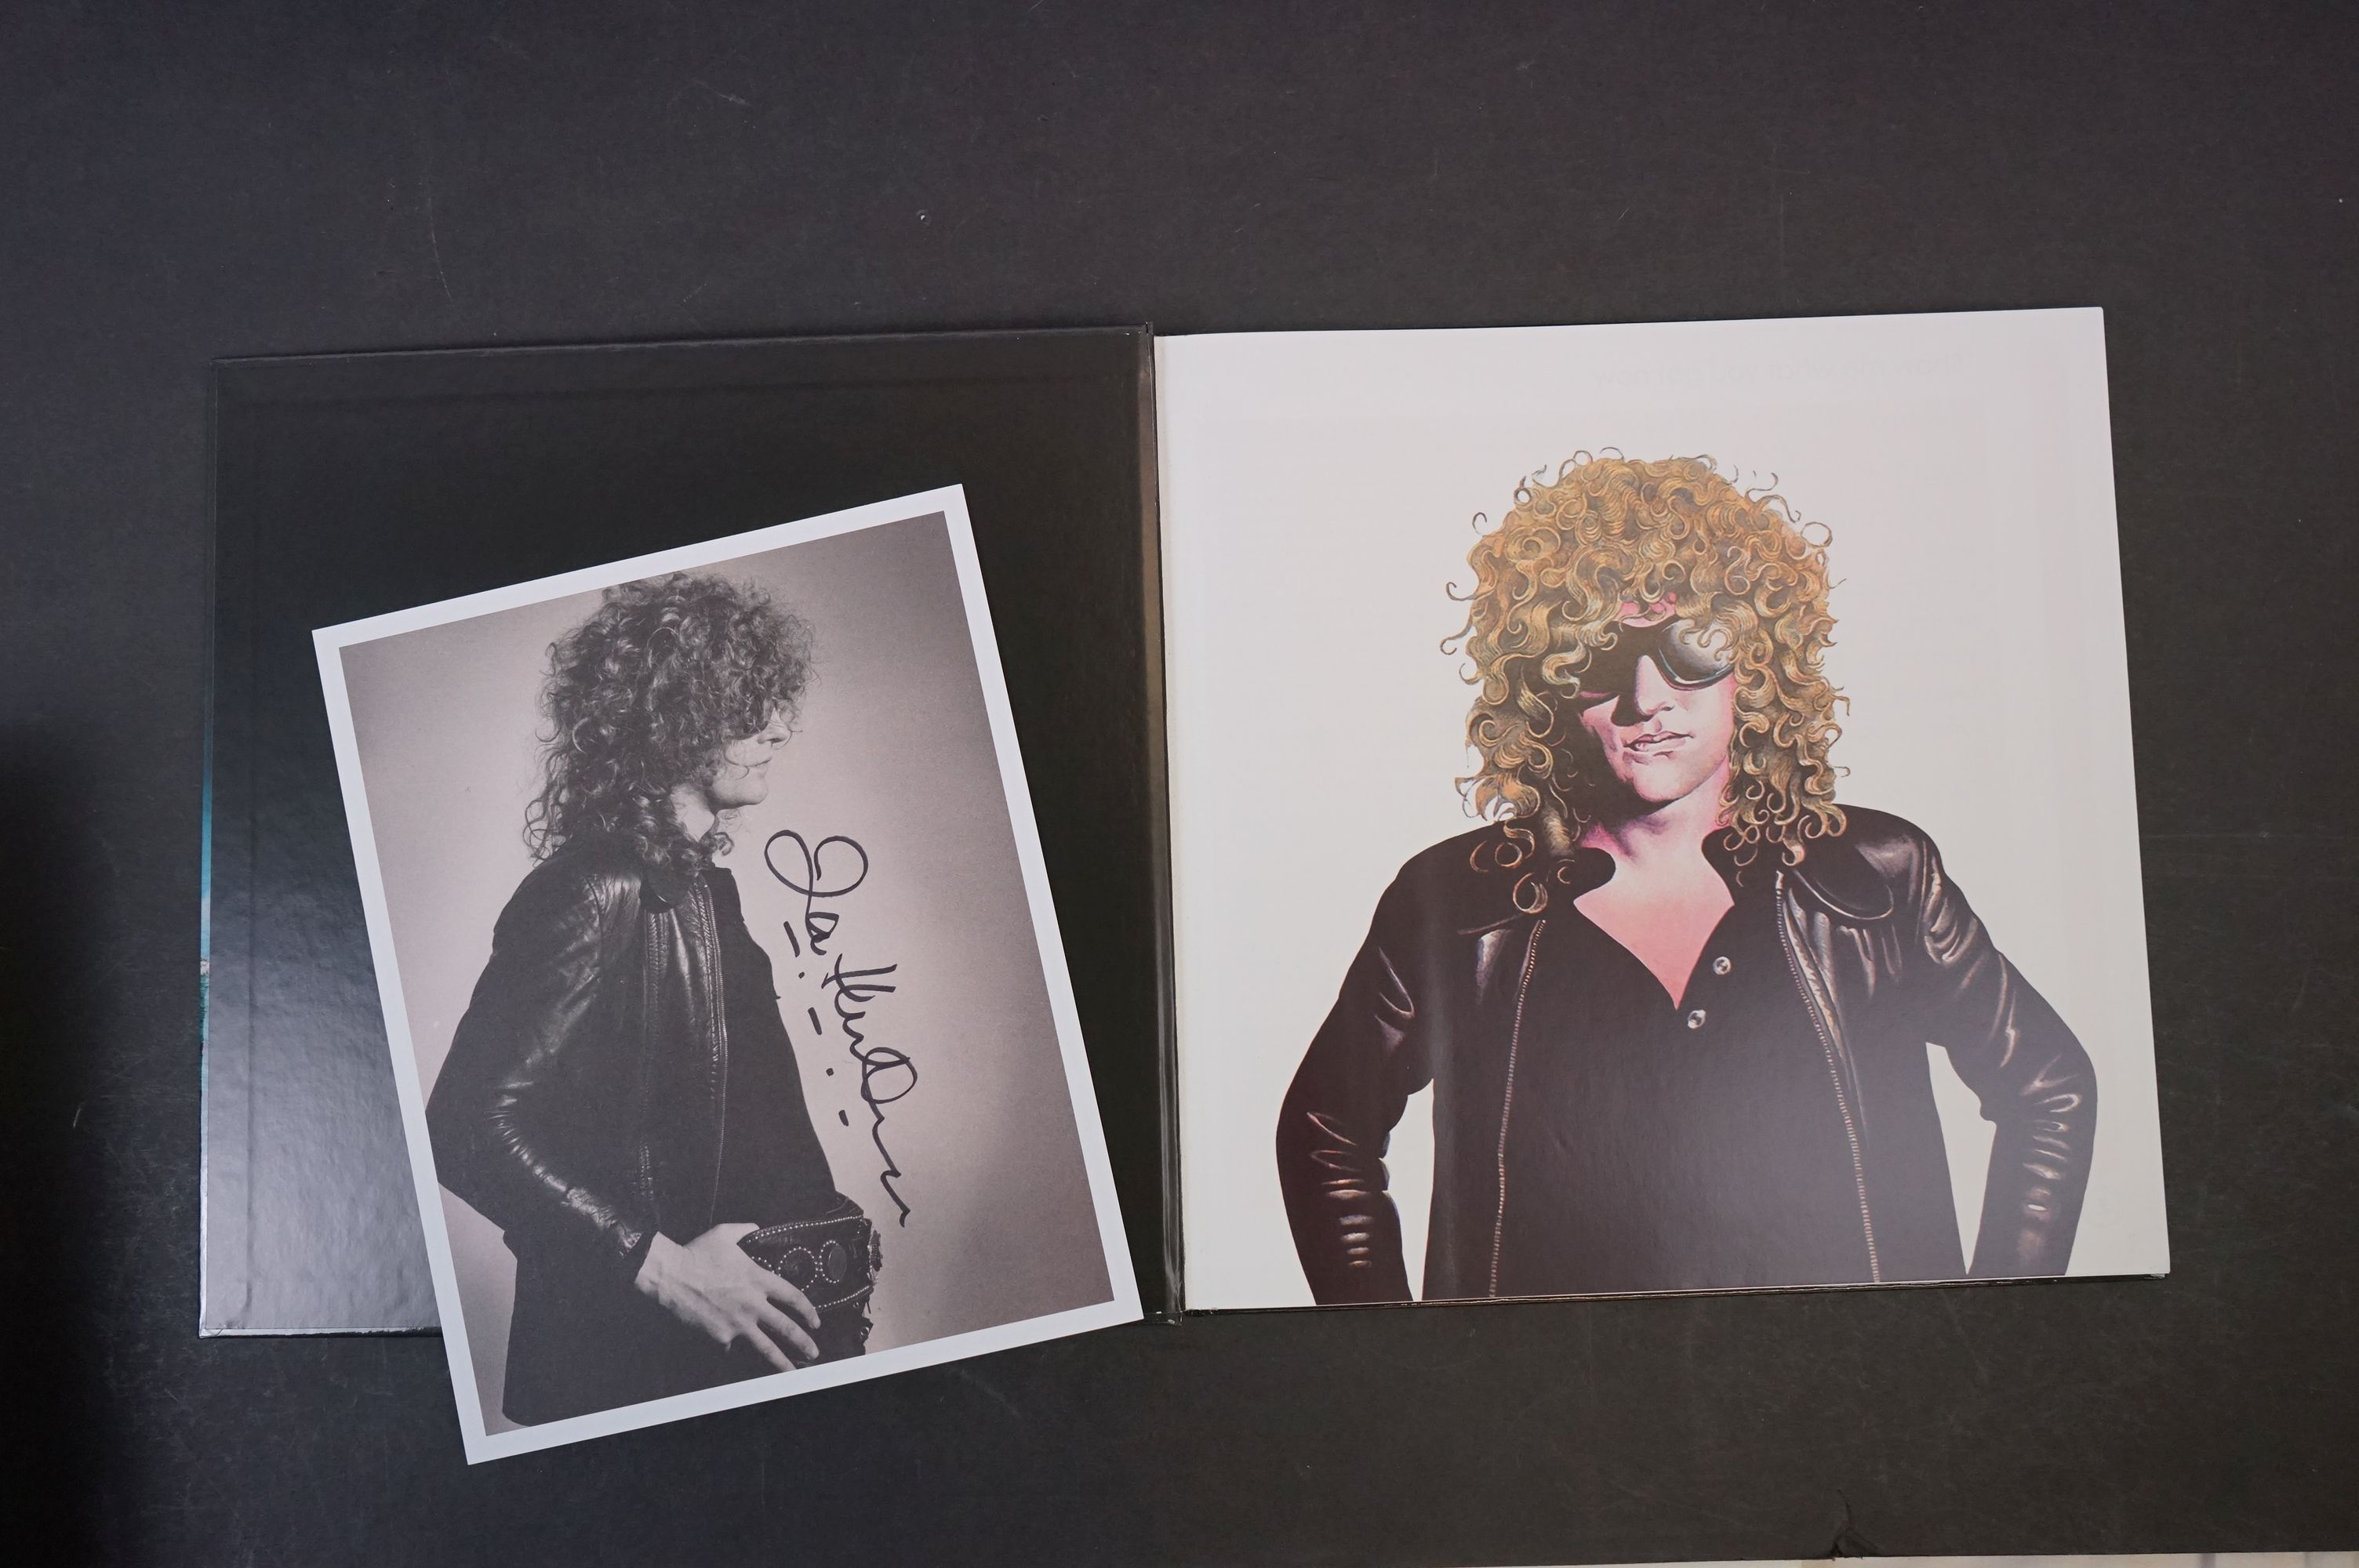 CD - Ian Hunter Stranded In Reality 30 Disc Box Set (2016) Proper Records, vg - Image 3 of 9